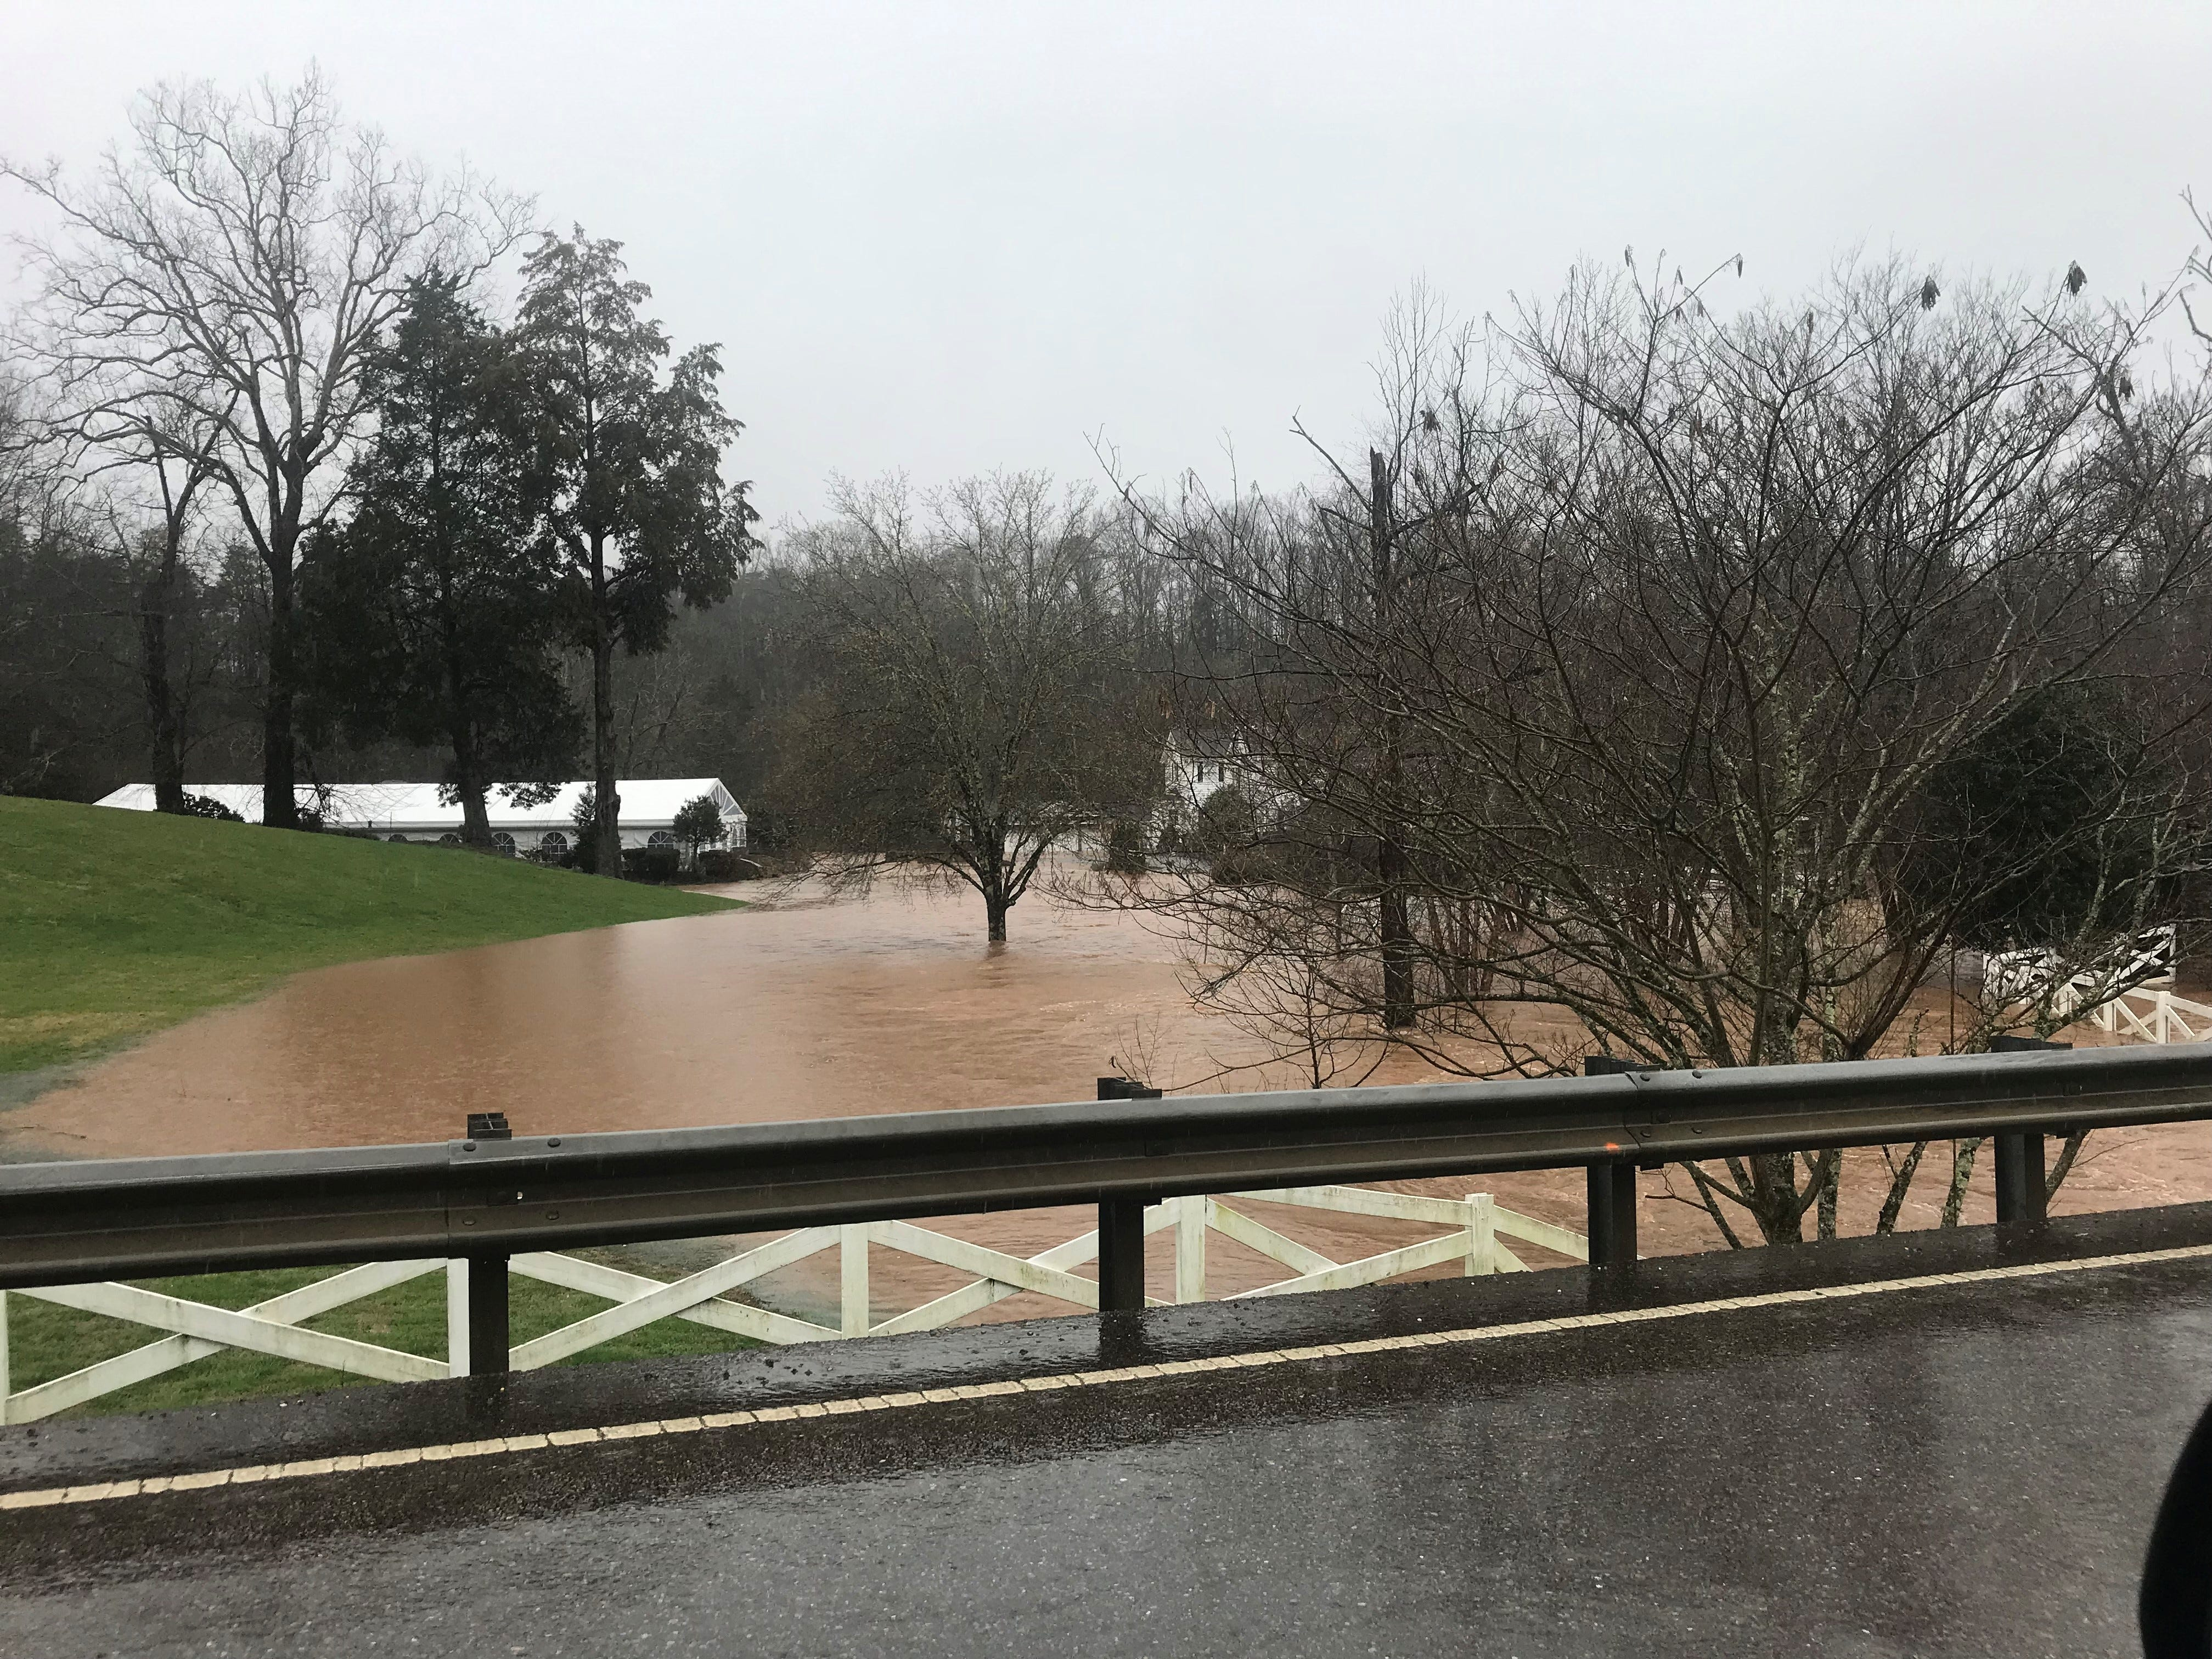 Dara's Garden on Maryville Pike is submerged in flood waters on Saturday, Feb. 23, 2019.